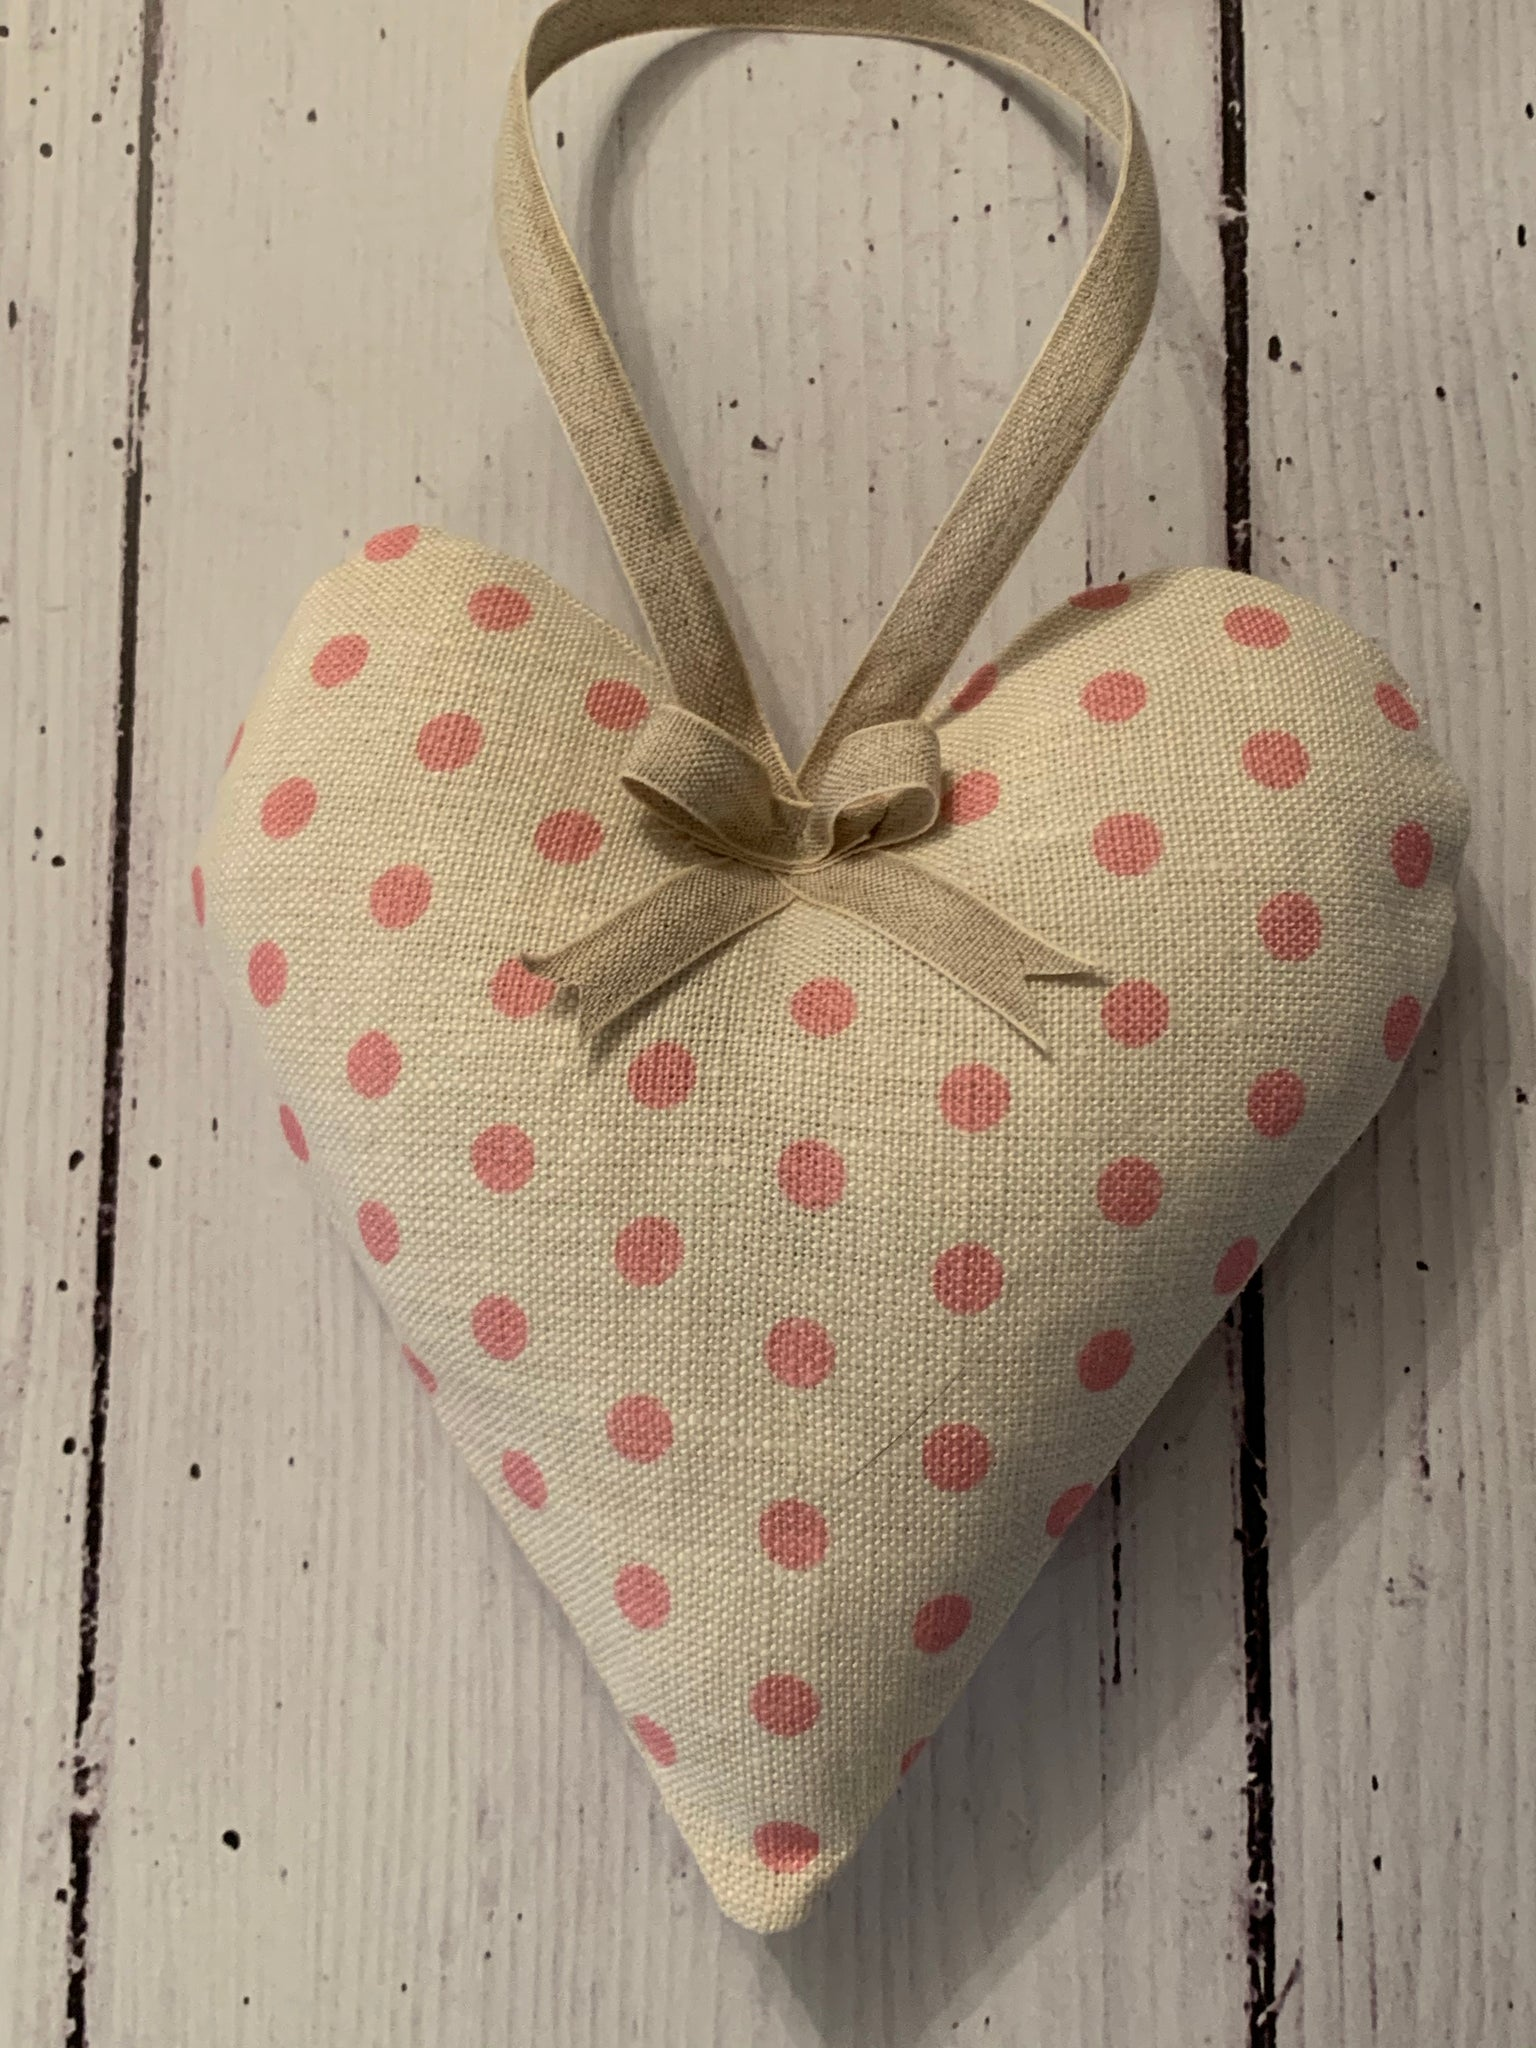 Handmade lavender infused Heart in Pink spotty by Sarah Hardaker